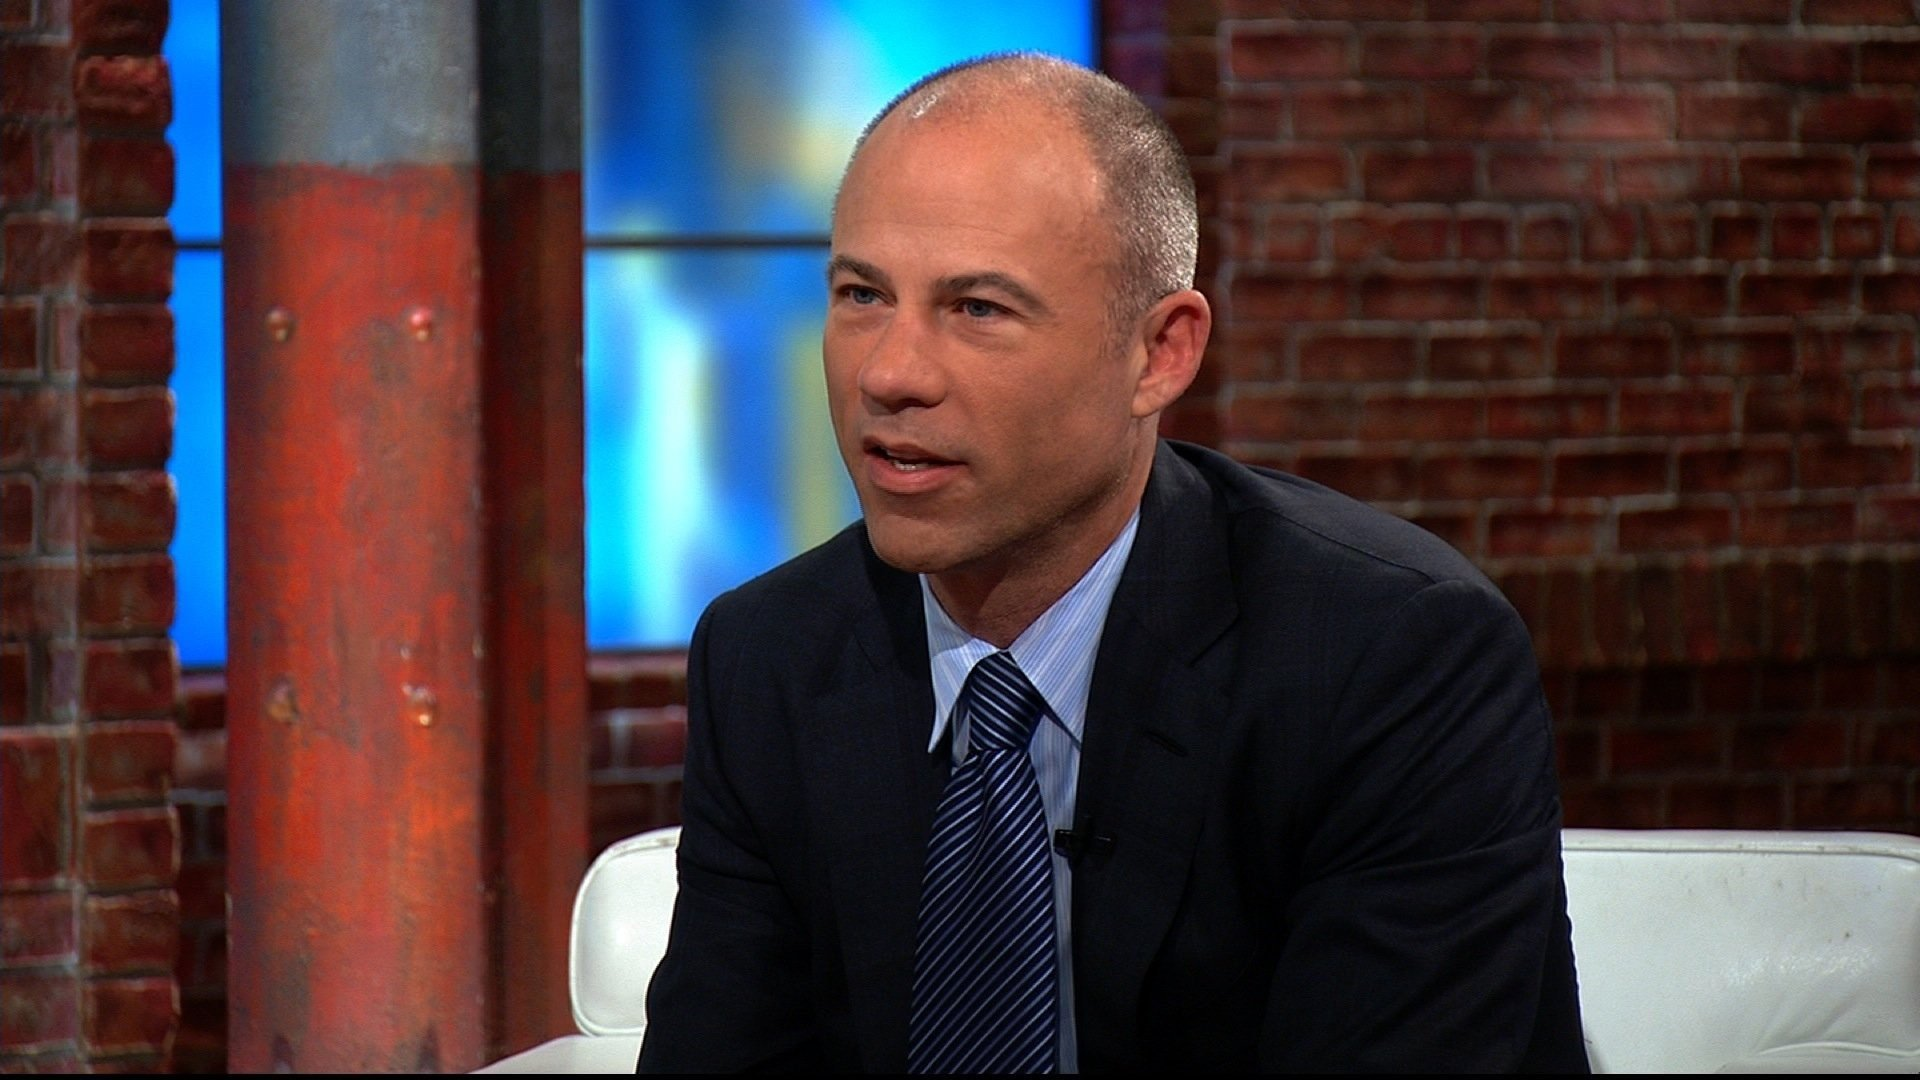 Judge: No immediate restraining order against Avenatti